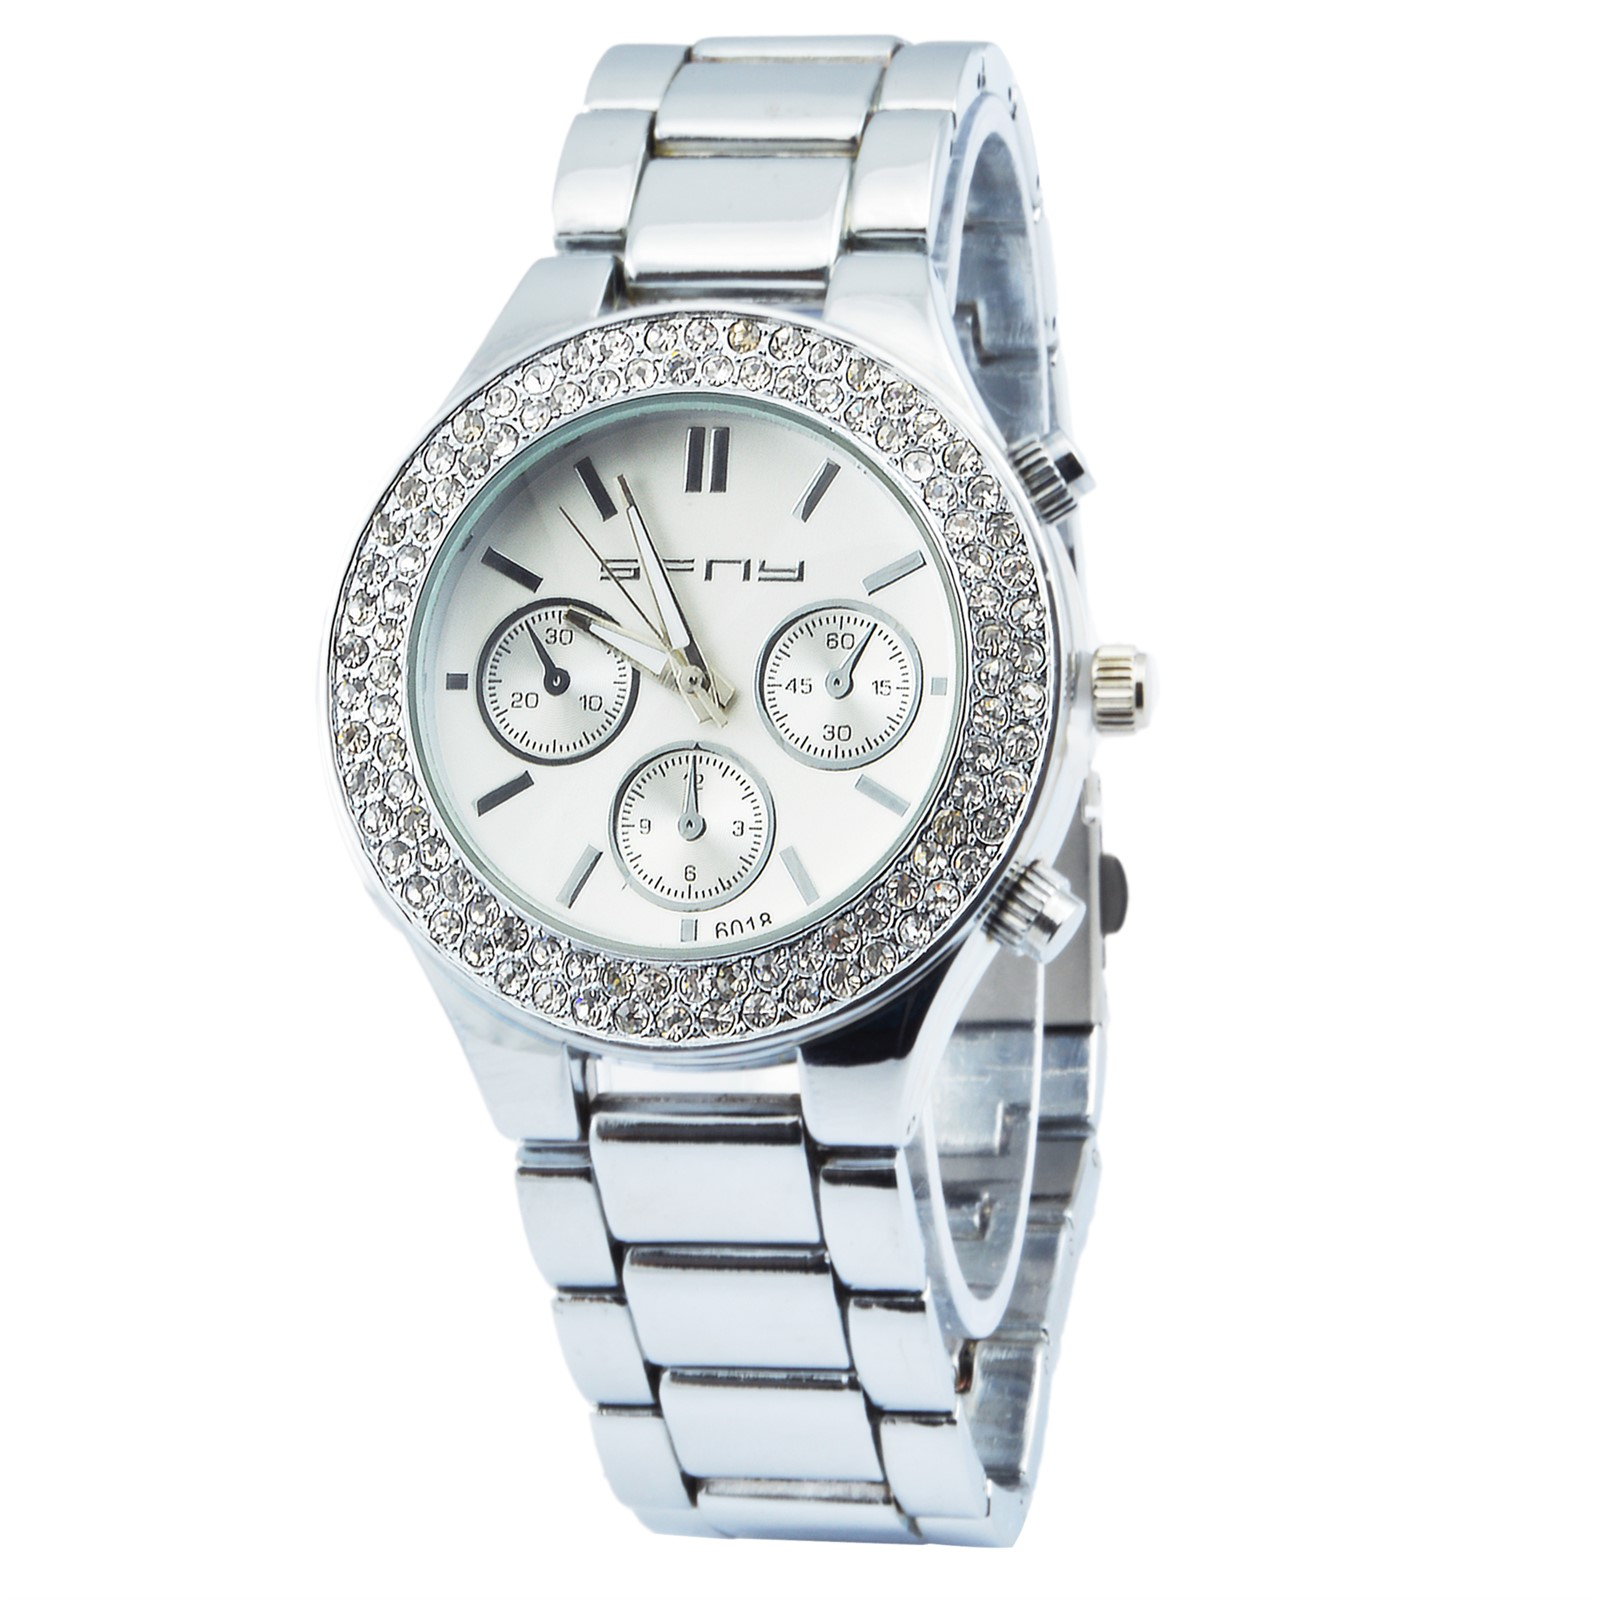 ceramic diamond pakistan ladies in buy luxury watch white watches chanel